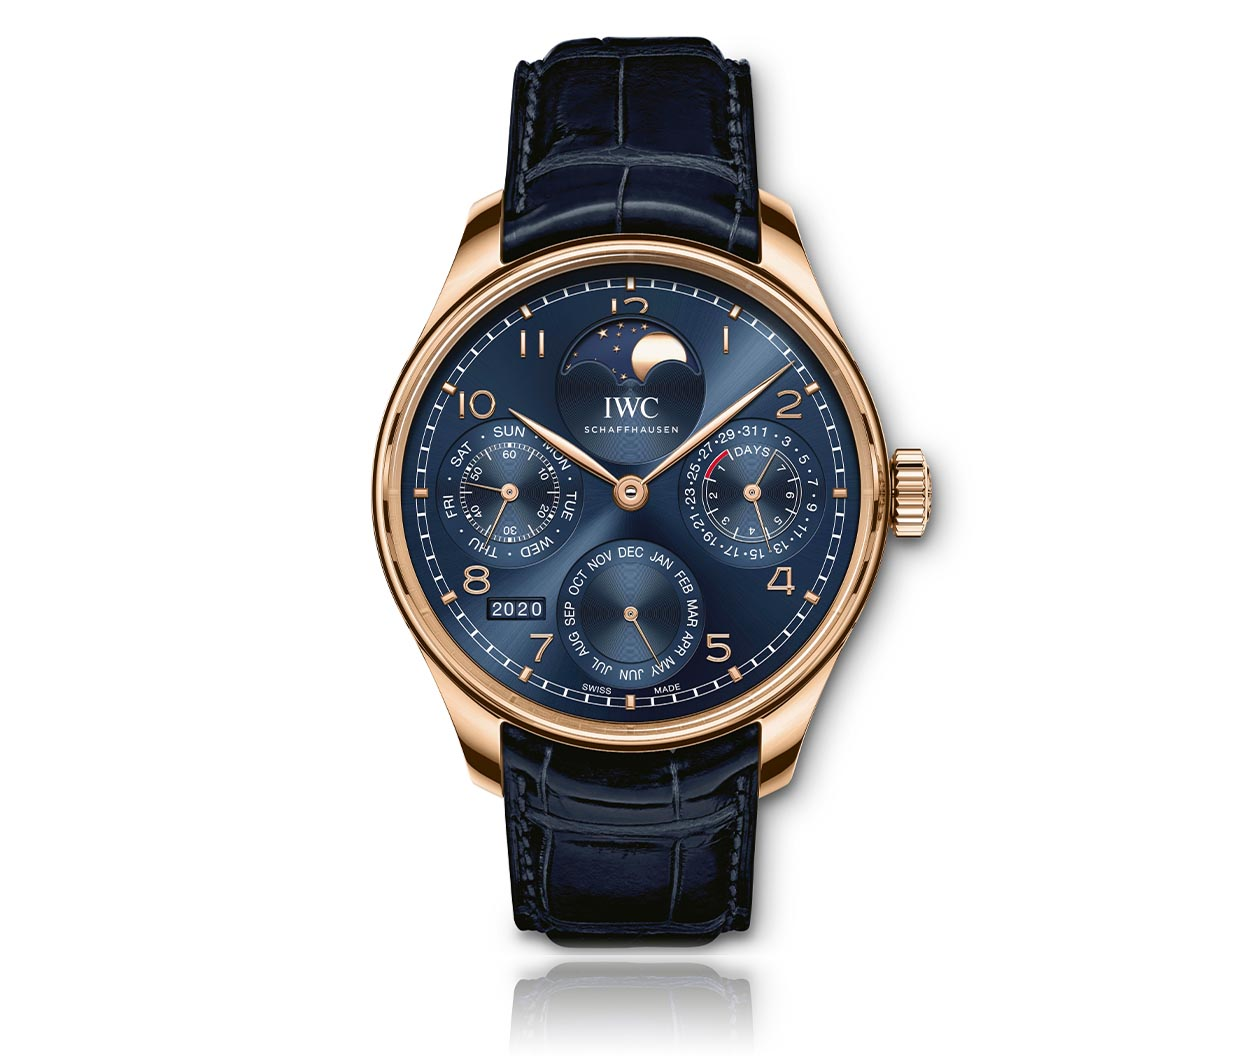 IWC Portugieser PerpetualCalendarBoutiqueEdition IW503312 Carousel 1 FINAL